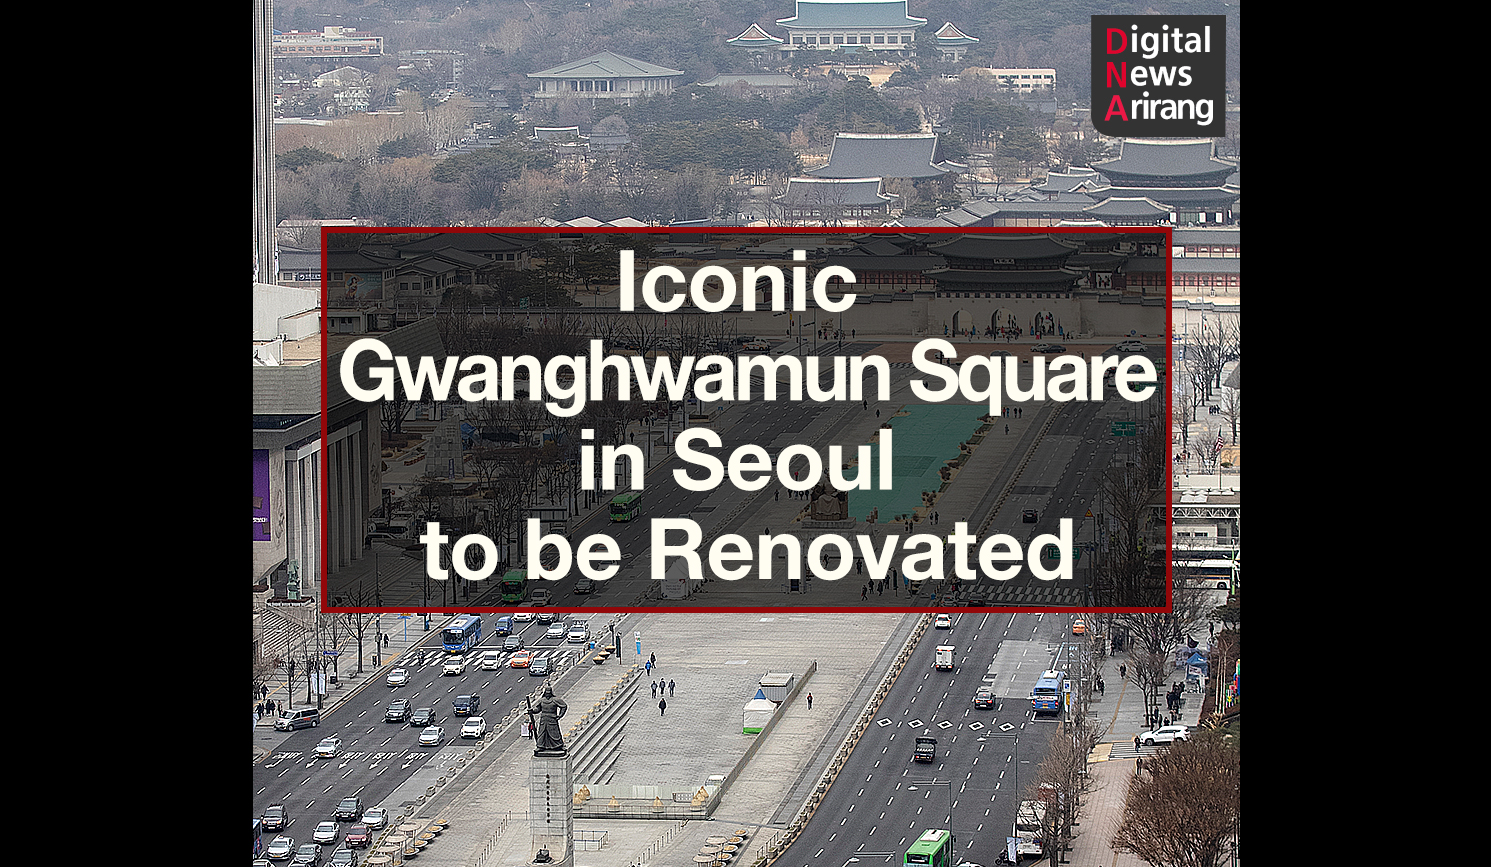 [DNA] Iconic Gwanghwamun Square in Seoul to be Renovated